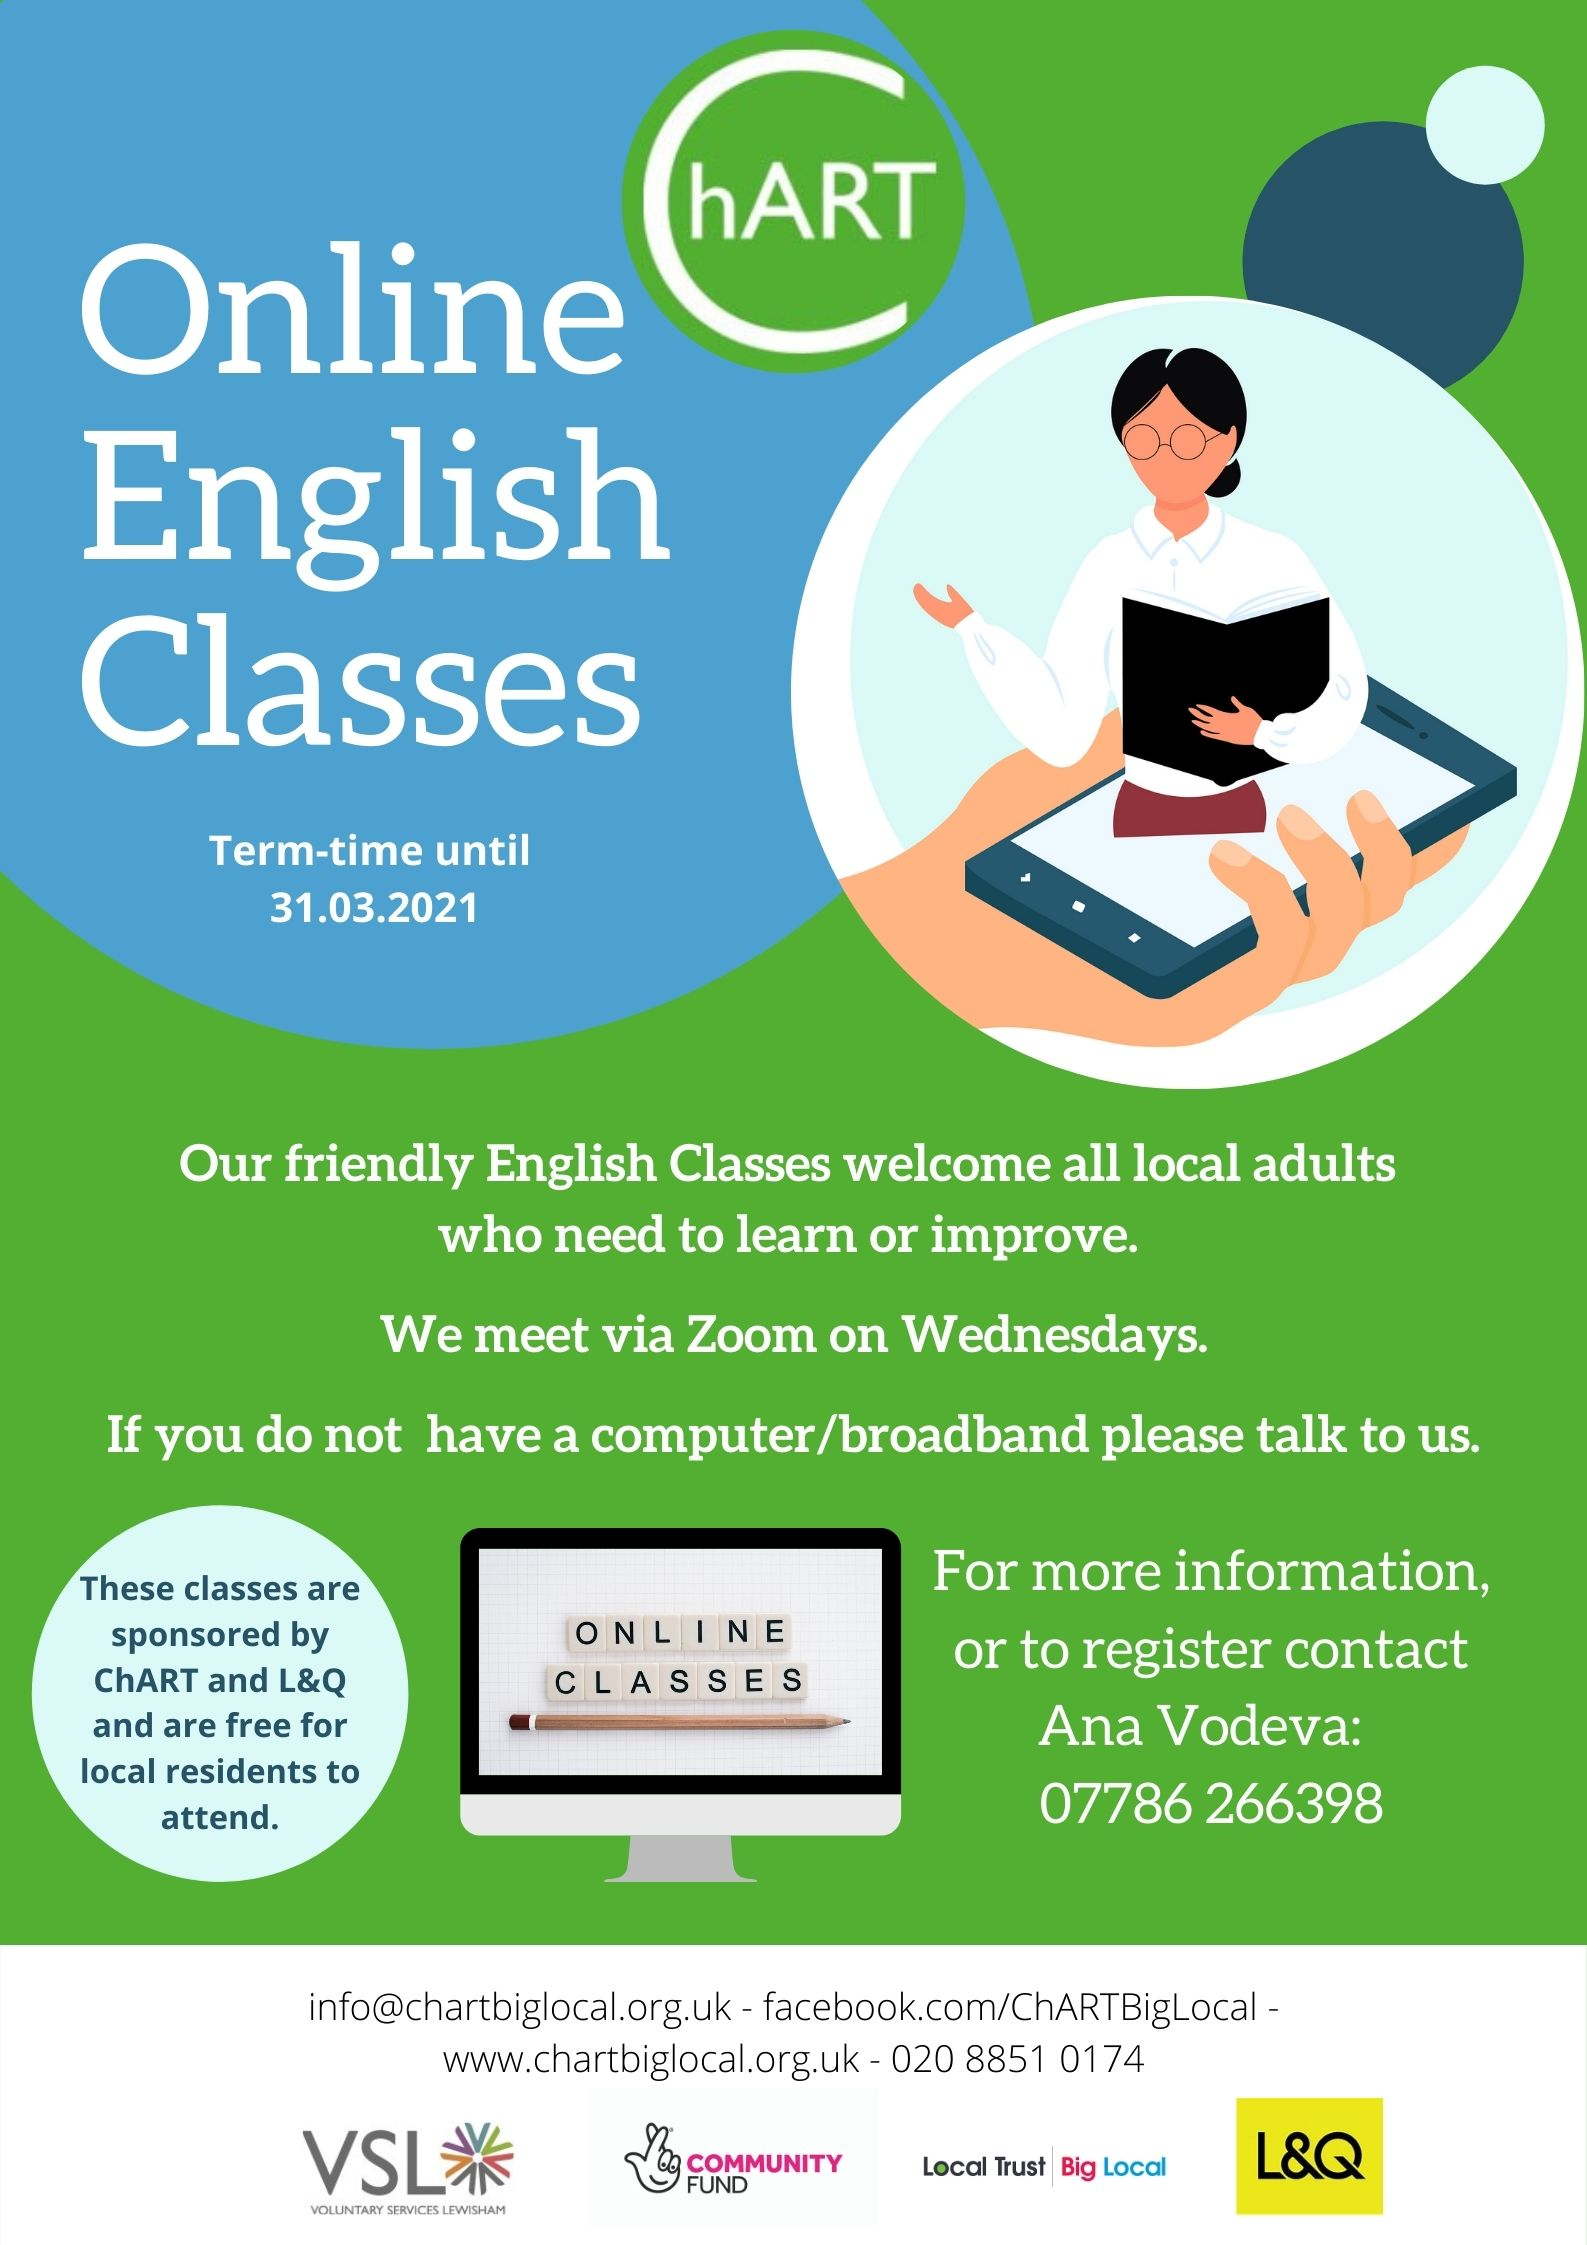 "Poster has green back ground, white text in blue circle reads Online English Classes. Pale blue circle has illustration of hand holding a mobile phone out of which a lady is rising holding a book. White text on main body of poster reads "" Our friendly English Classes welcome all local adults who need to learn or improve. We meet via Zoom on Wednesdays and Thursdays. If you do not have a computer / broadband please talk to us. For more information or to register contact Ana Vodeva: 07786 266398"